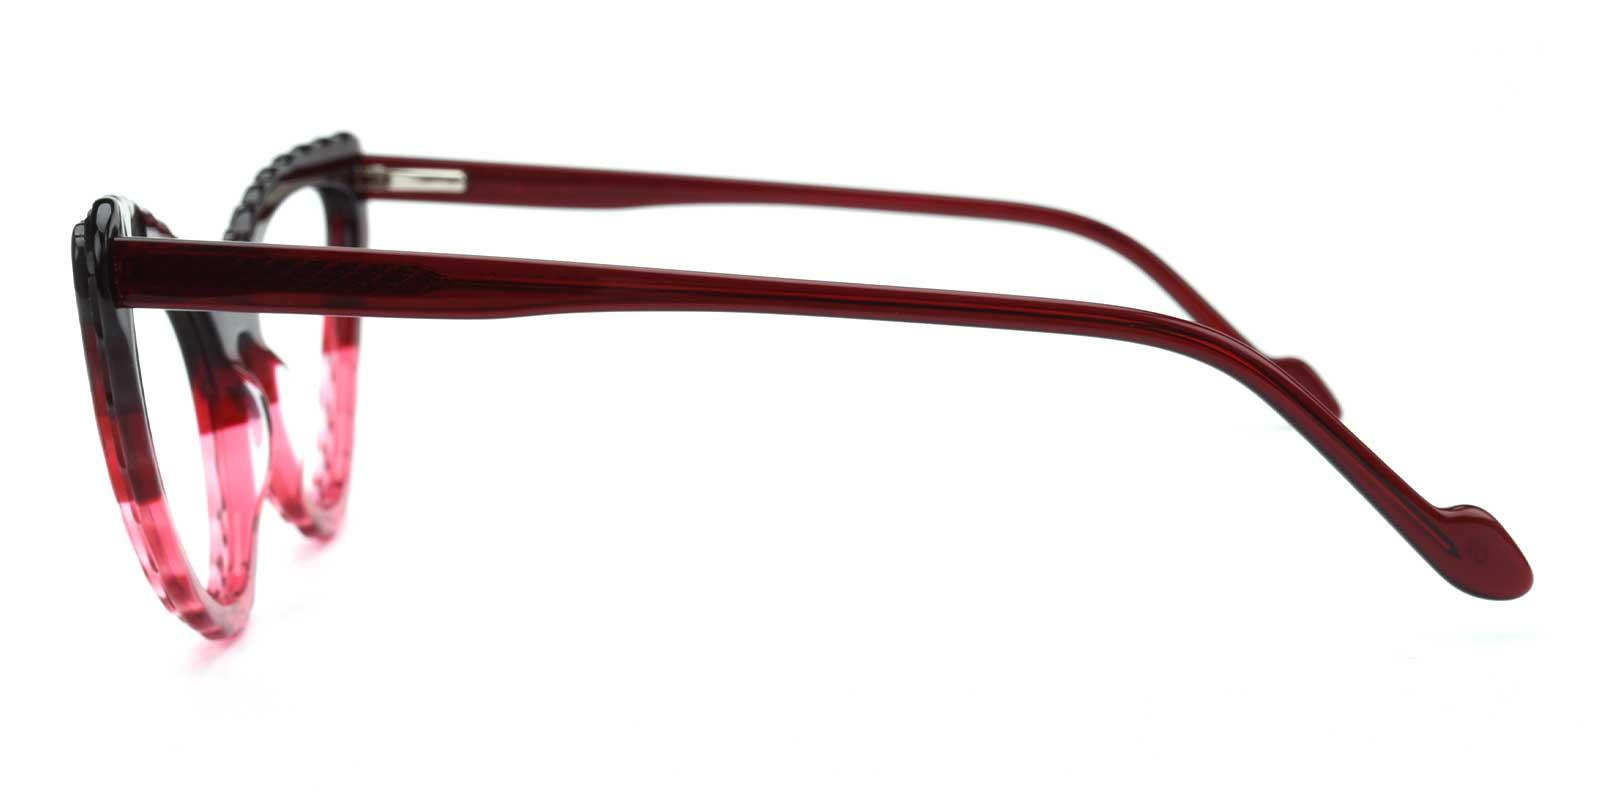 Barry-Purple-Cat-Acetate-Eyeglasses-additional3